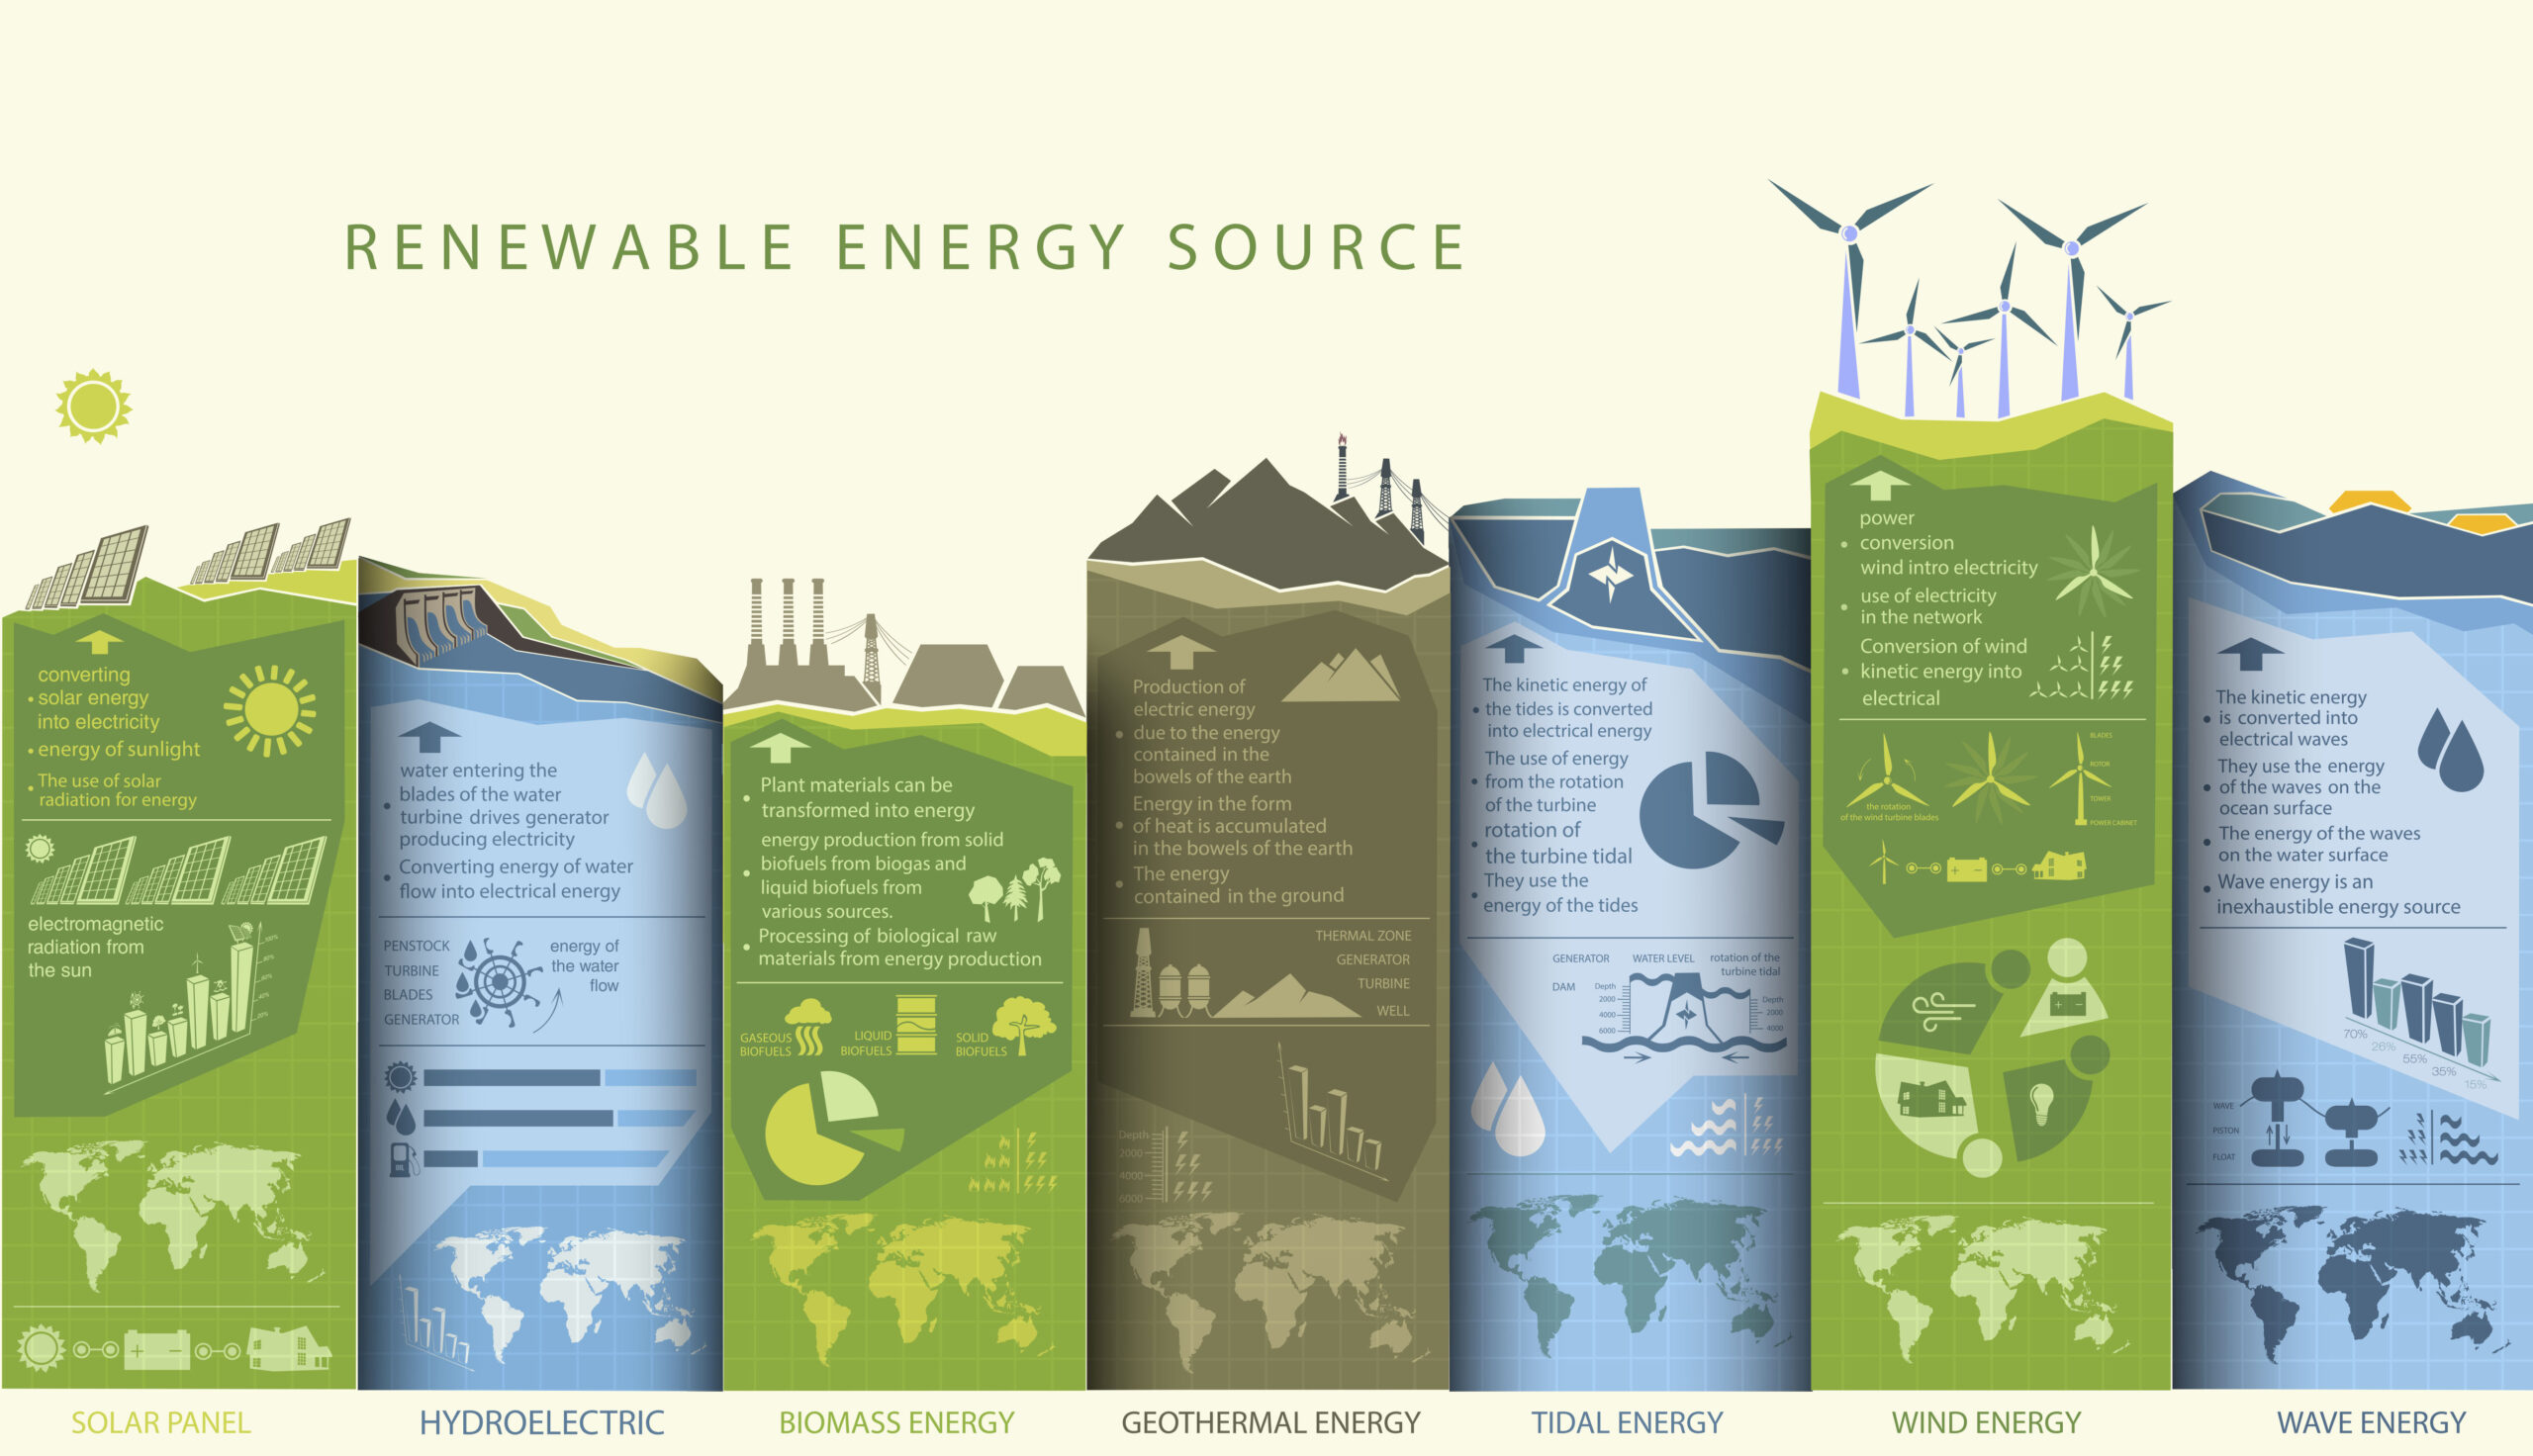 An infographic describing the different renewable energy sources.